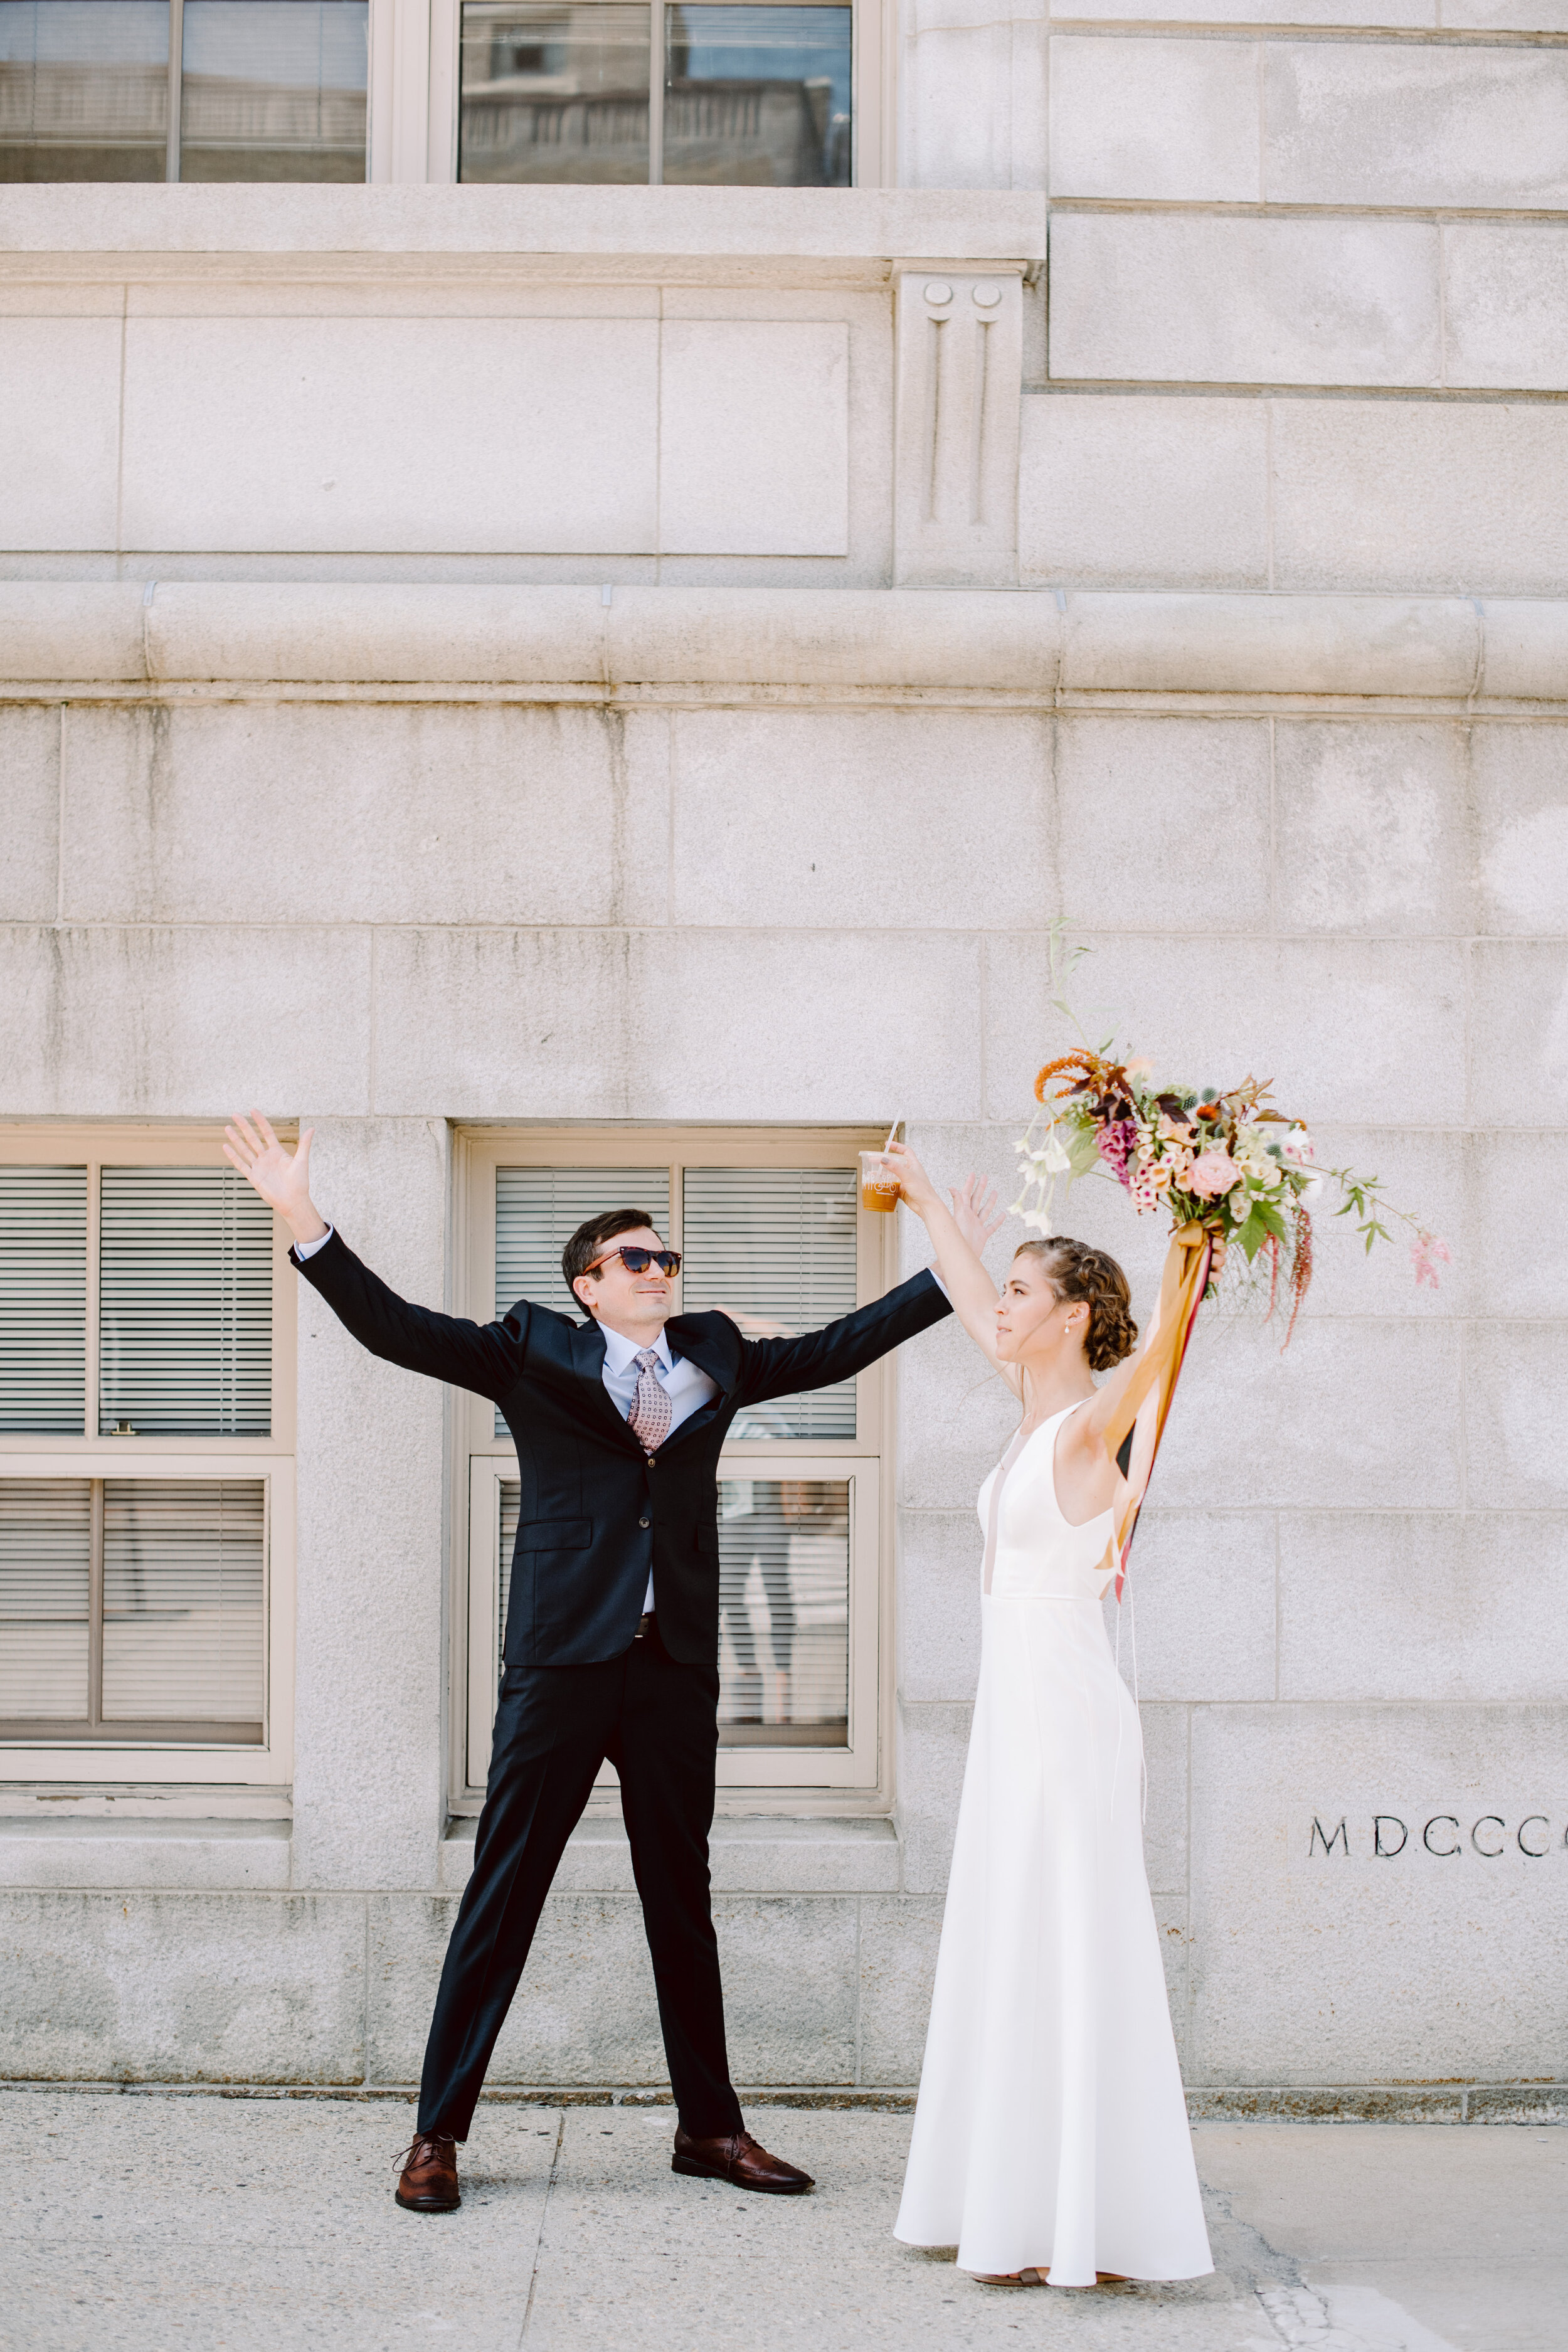 celebrity weddings in portland maine downtown ideas and inspiration